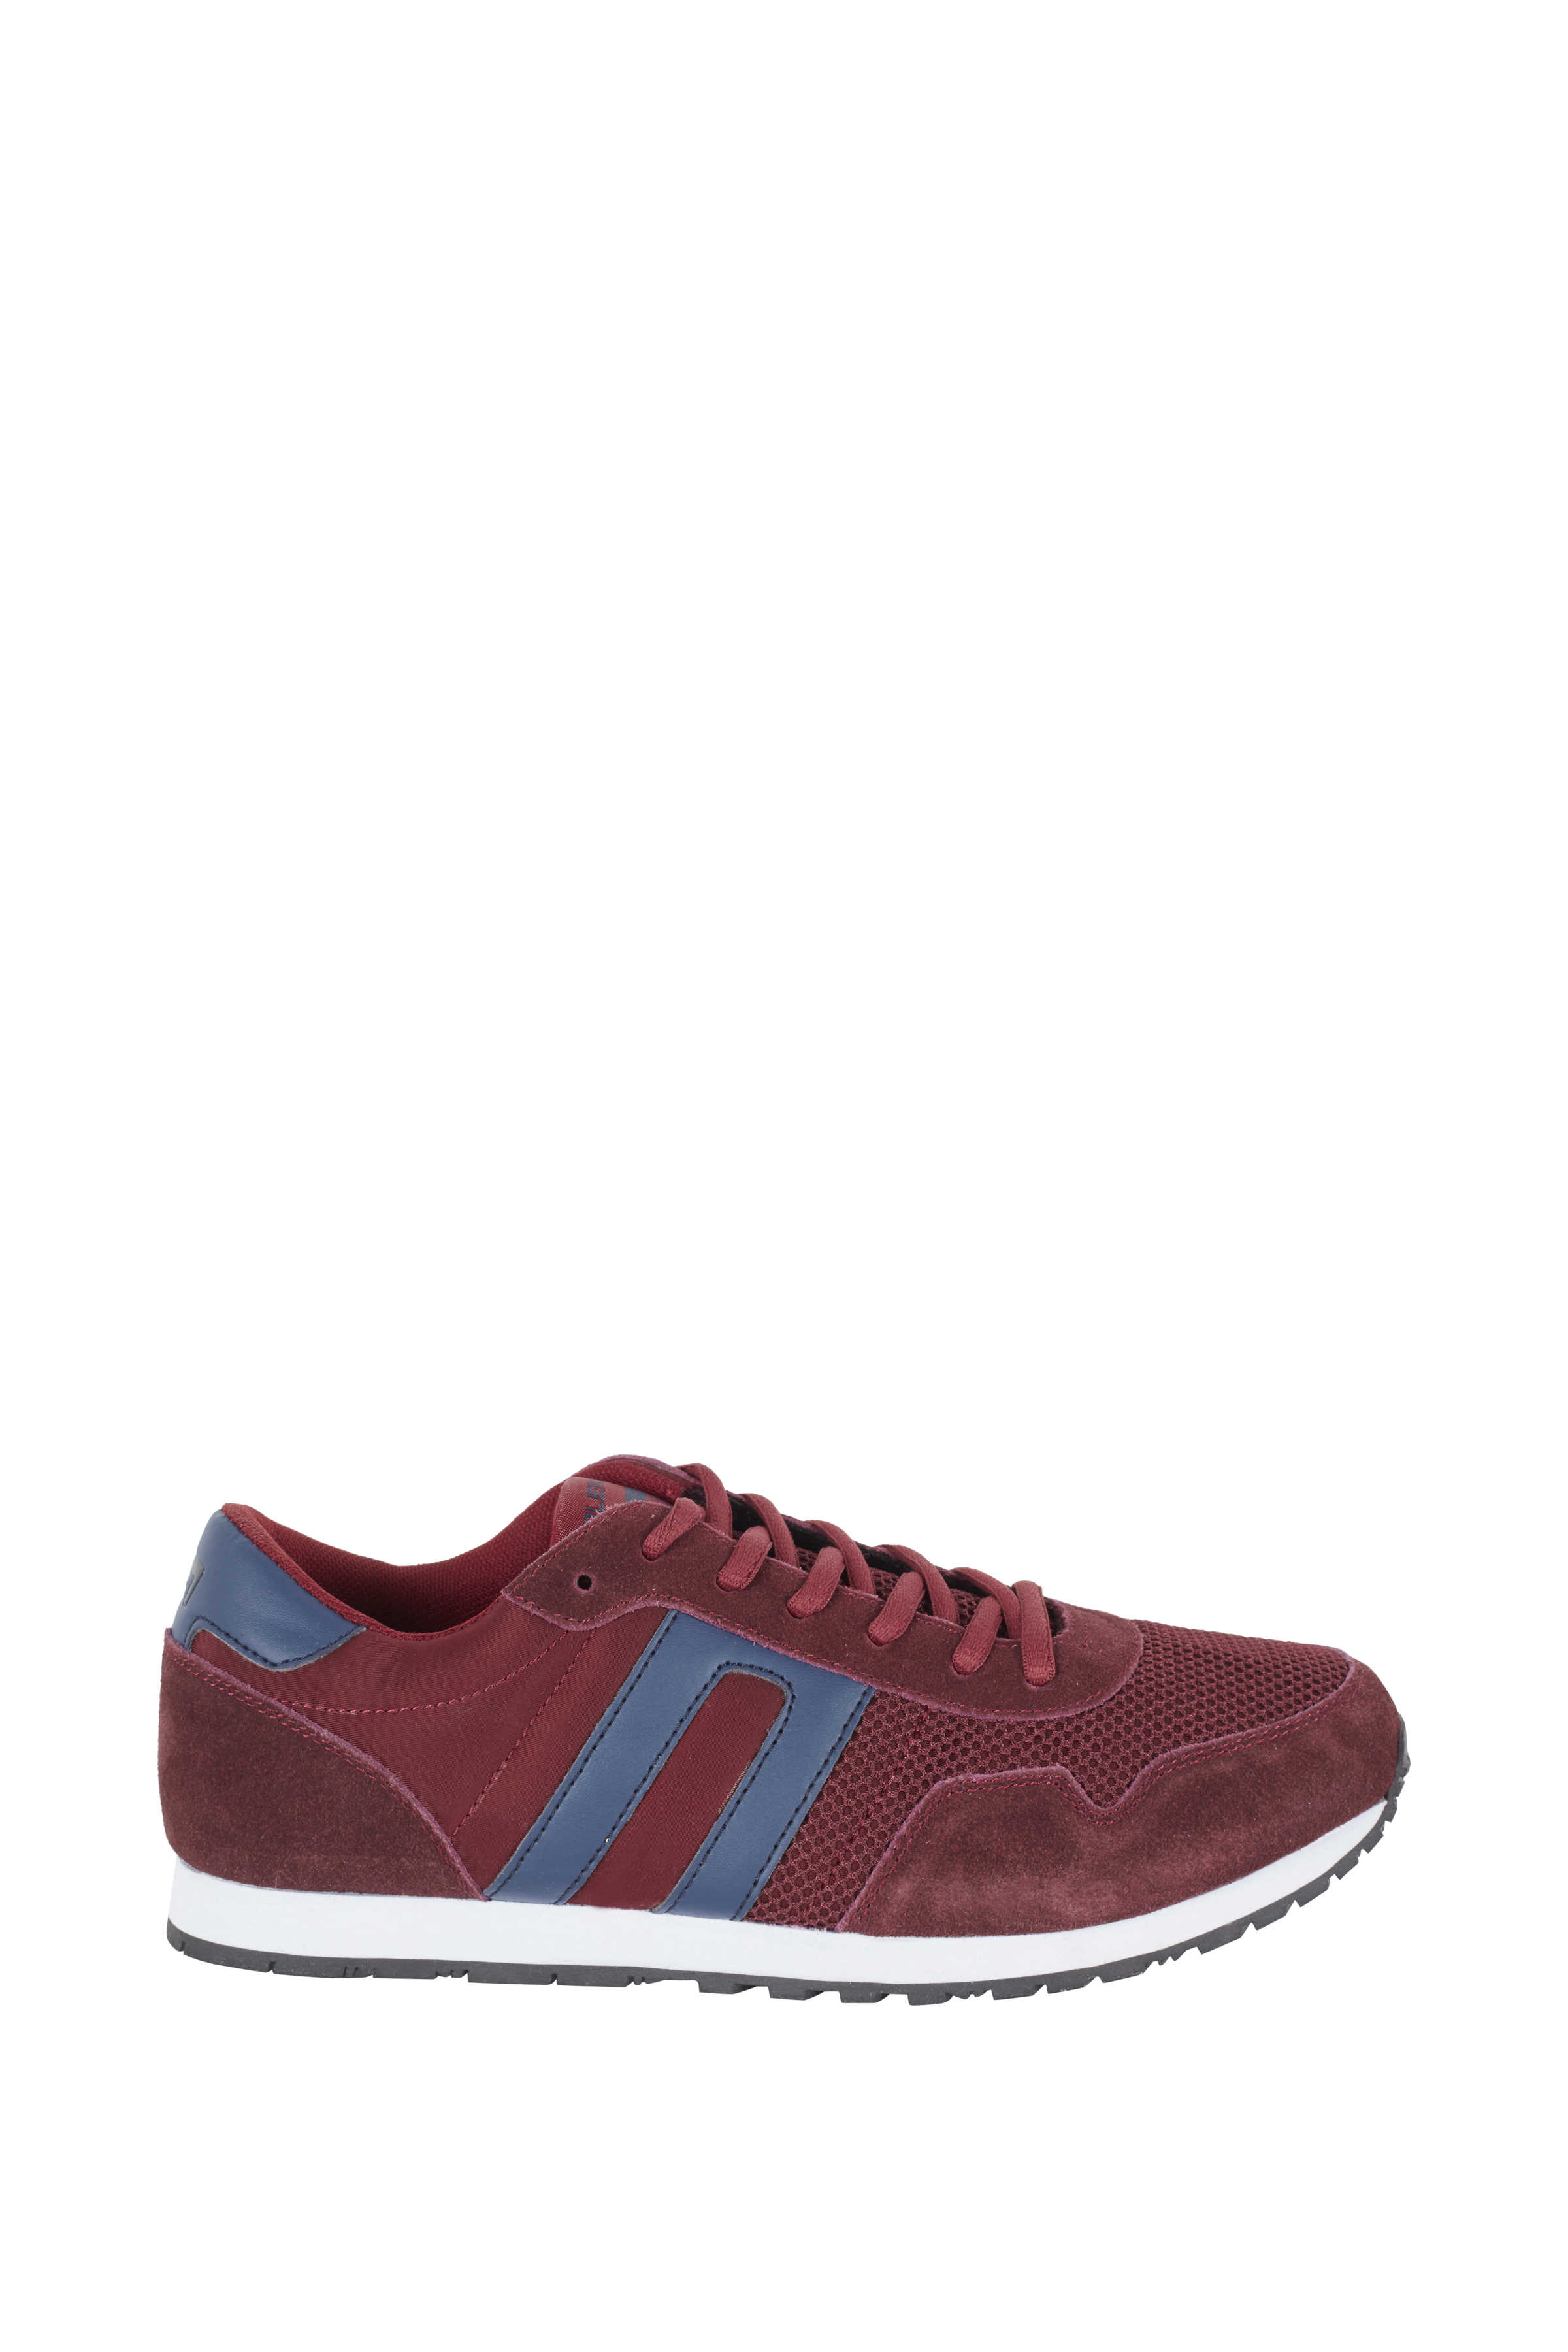 Blend He Shoes Herre Sneakers - Bordeaux